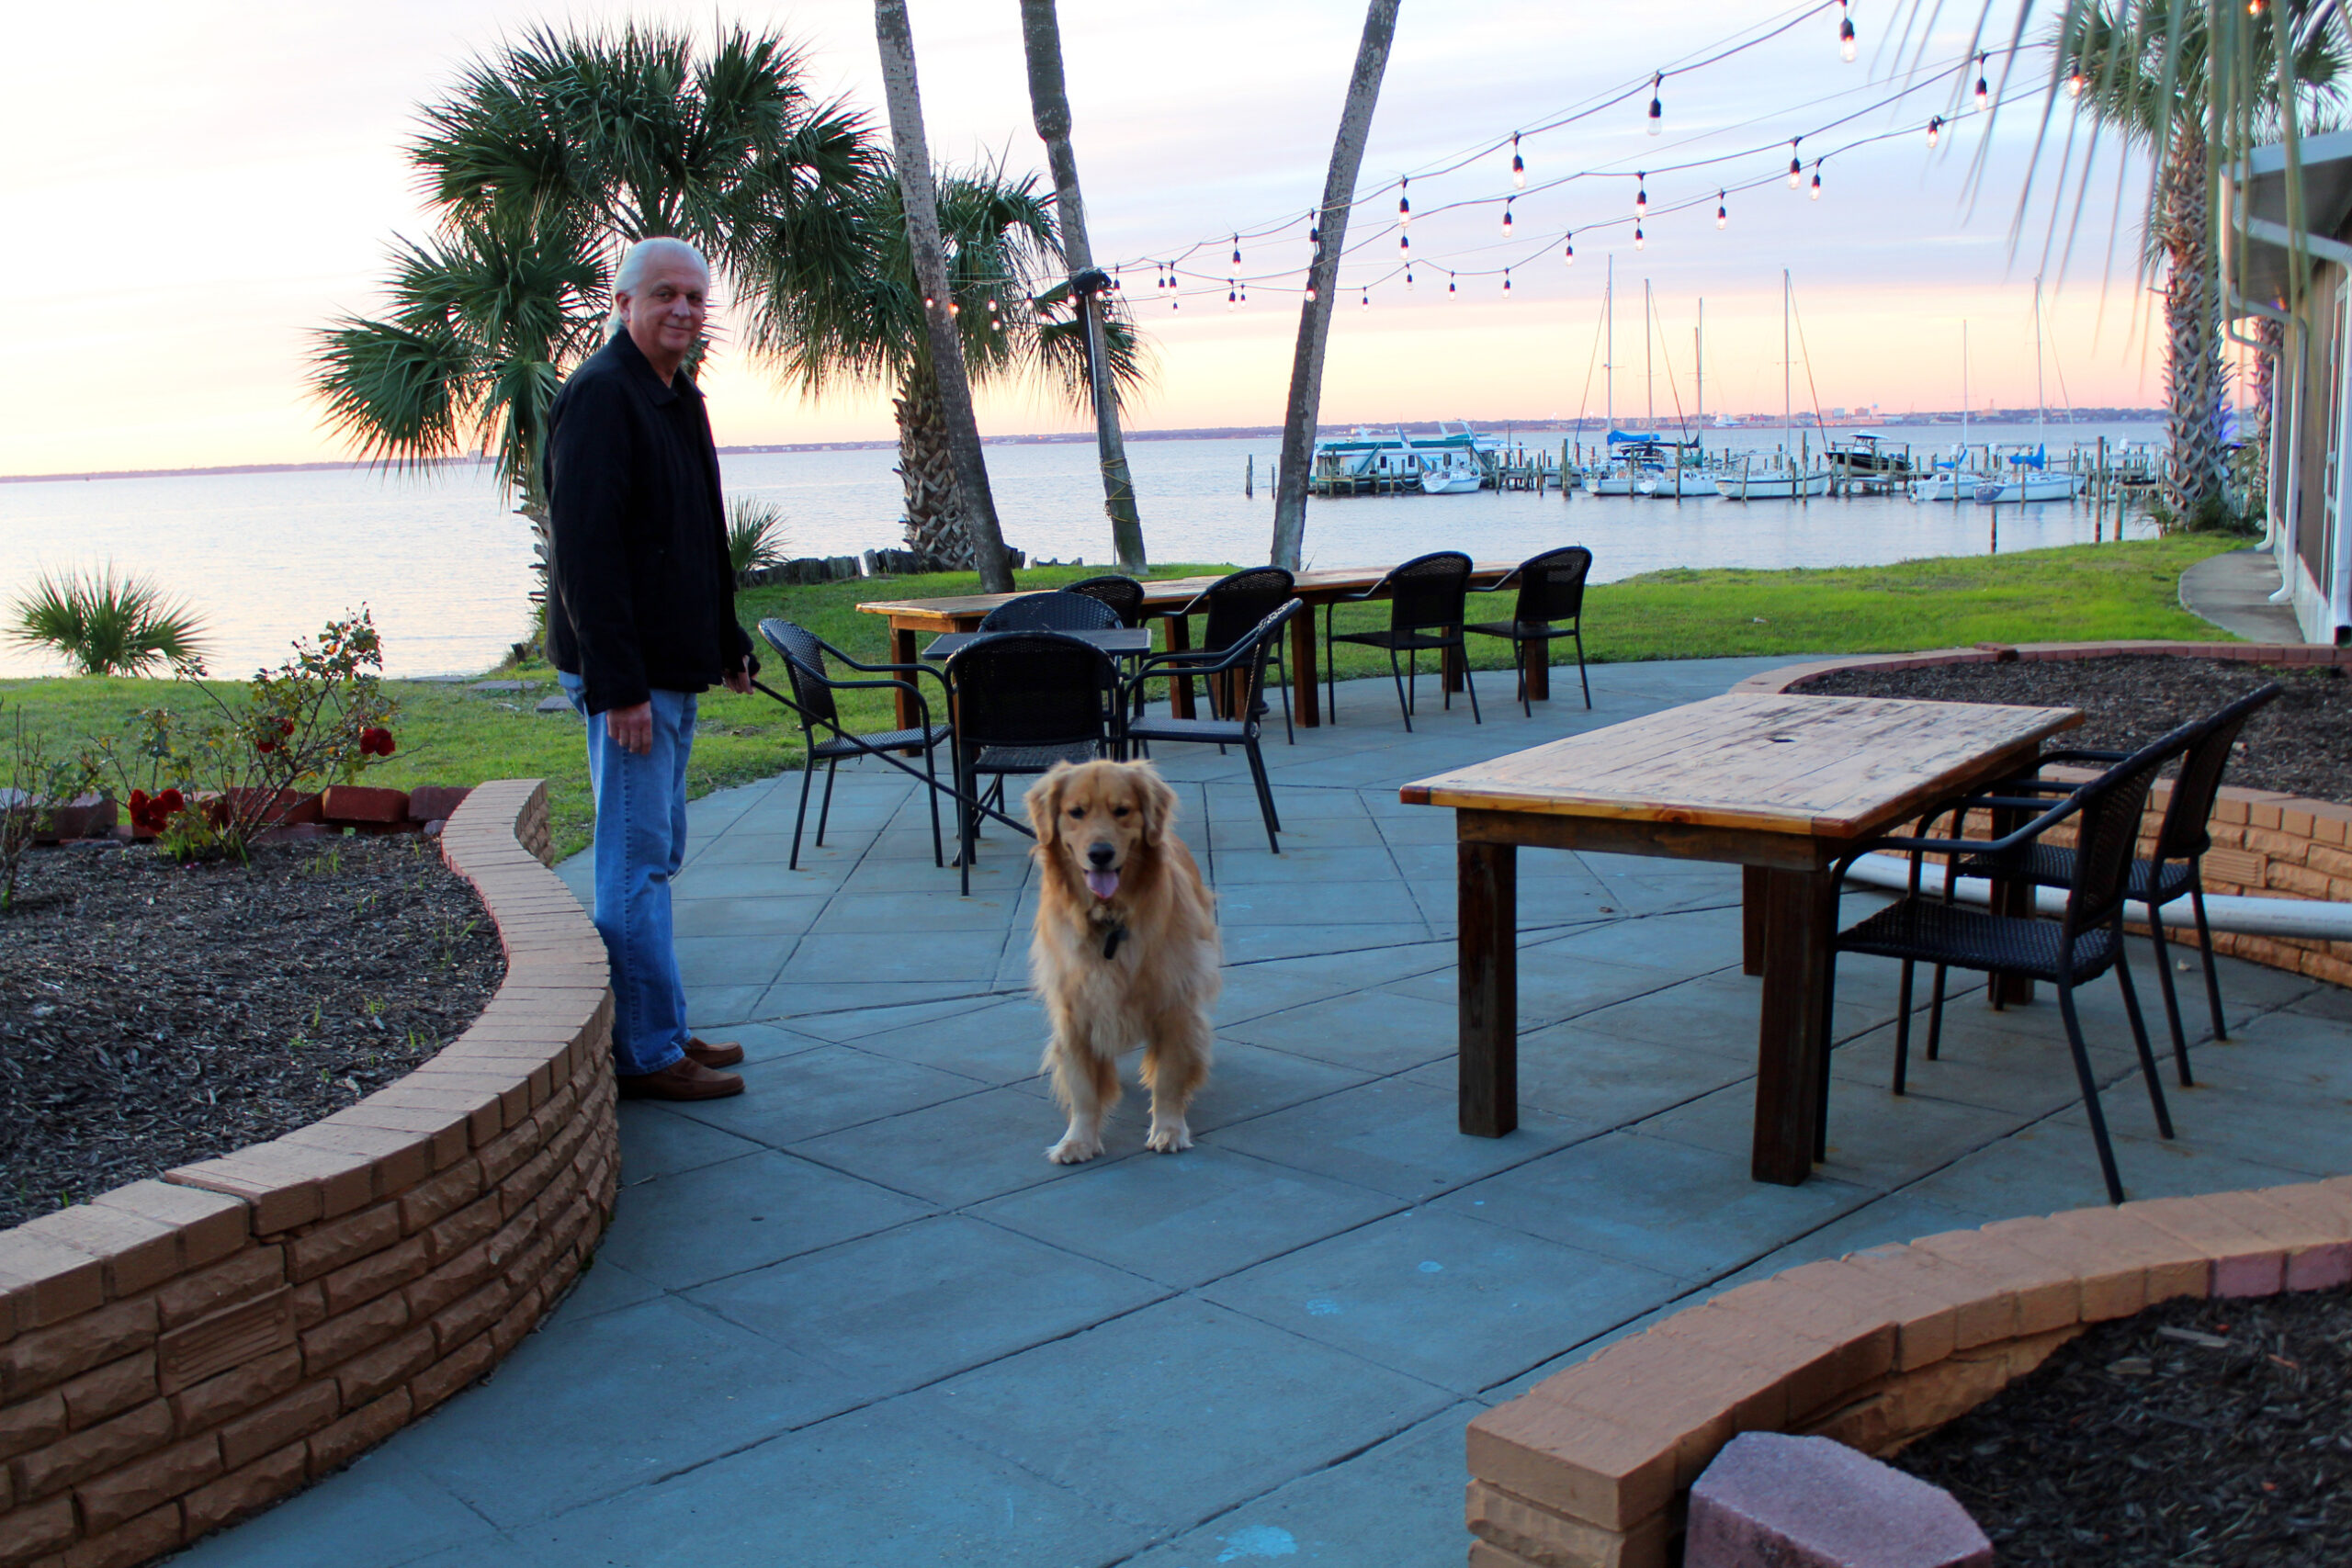 Quality Inn at Gulf Breeze FL with a stunning sunset view of the bay and harbor